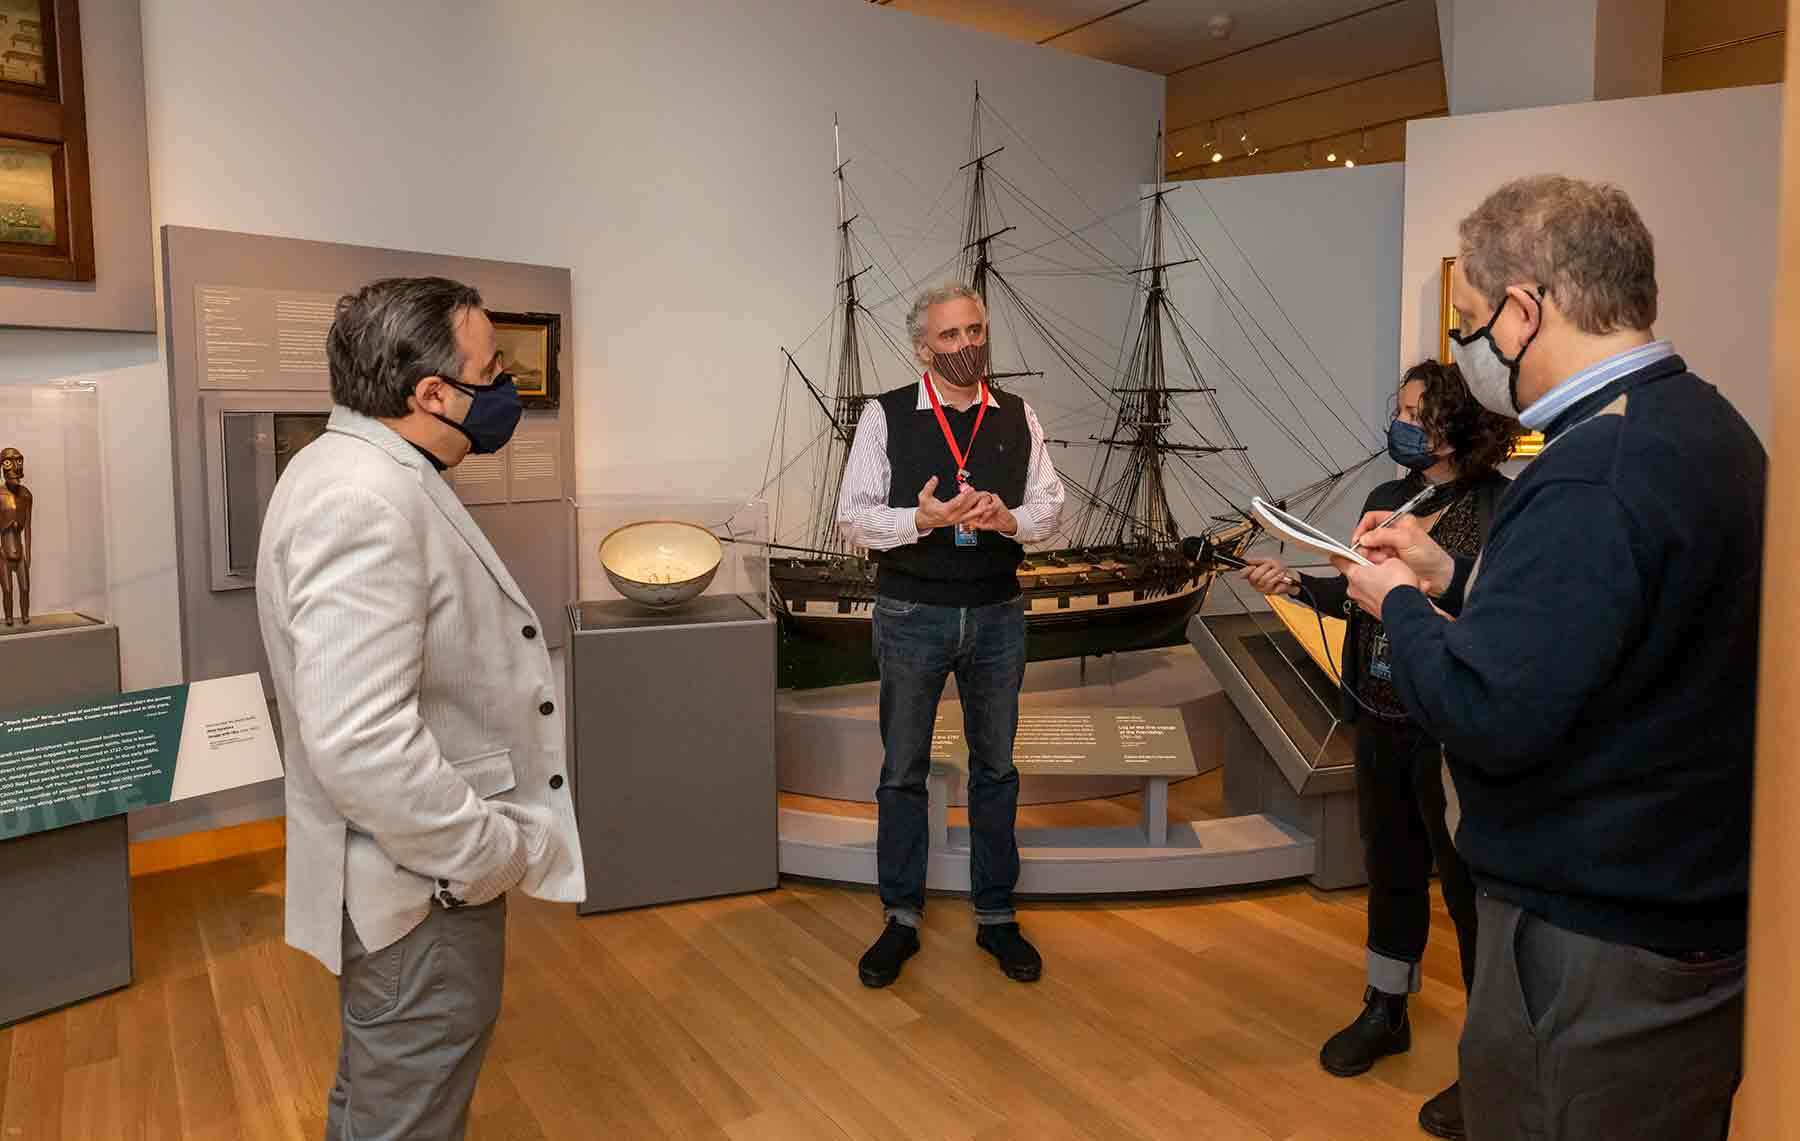 Dan Finamore talking to a gropu of people in the Maritime gallery